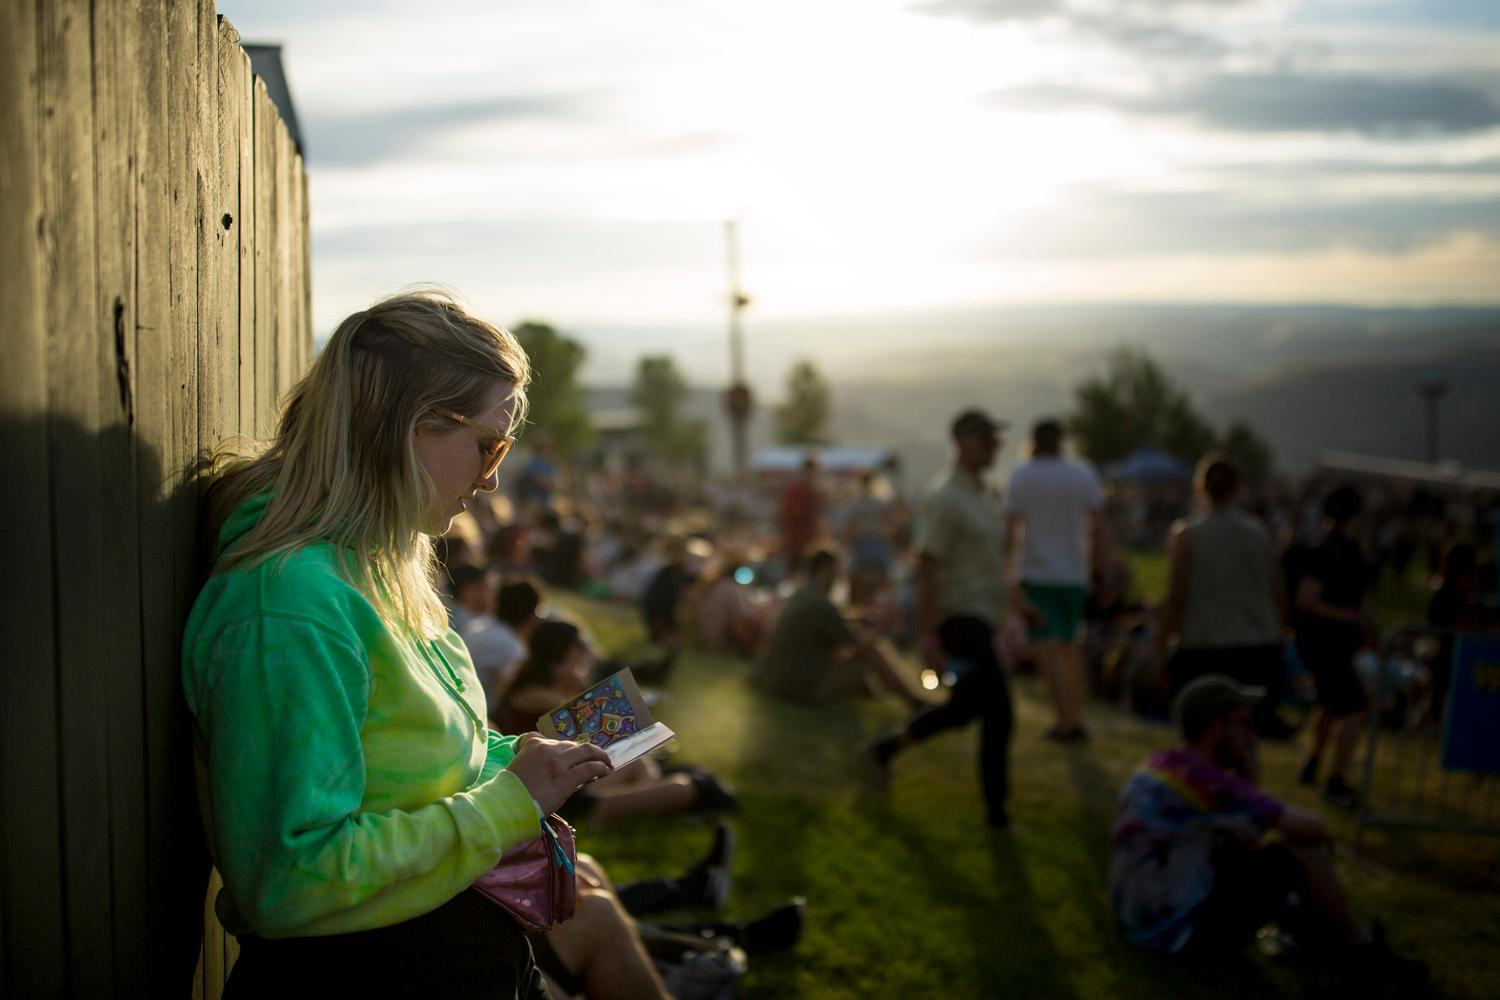 Fans came out in force for the annual Sasquatch! Music Festival with a lineup including Bon Iver, David Byrne, and Tyler, The Creator. The three-day festival runs throughout the Memorial Day Weekend, from May 25-27, 2018. (Sy Bean / Seattle Refined)